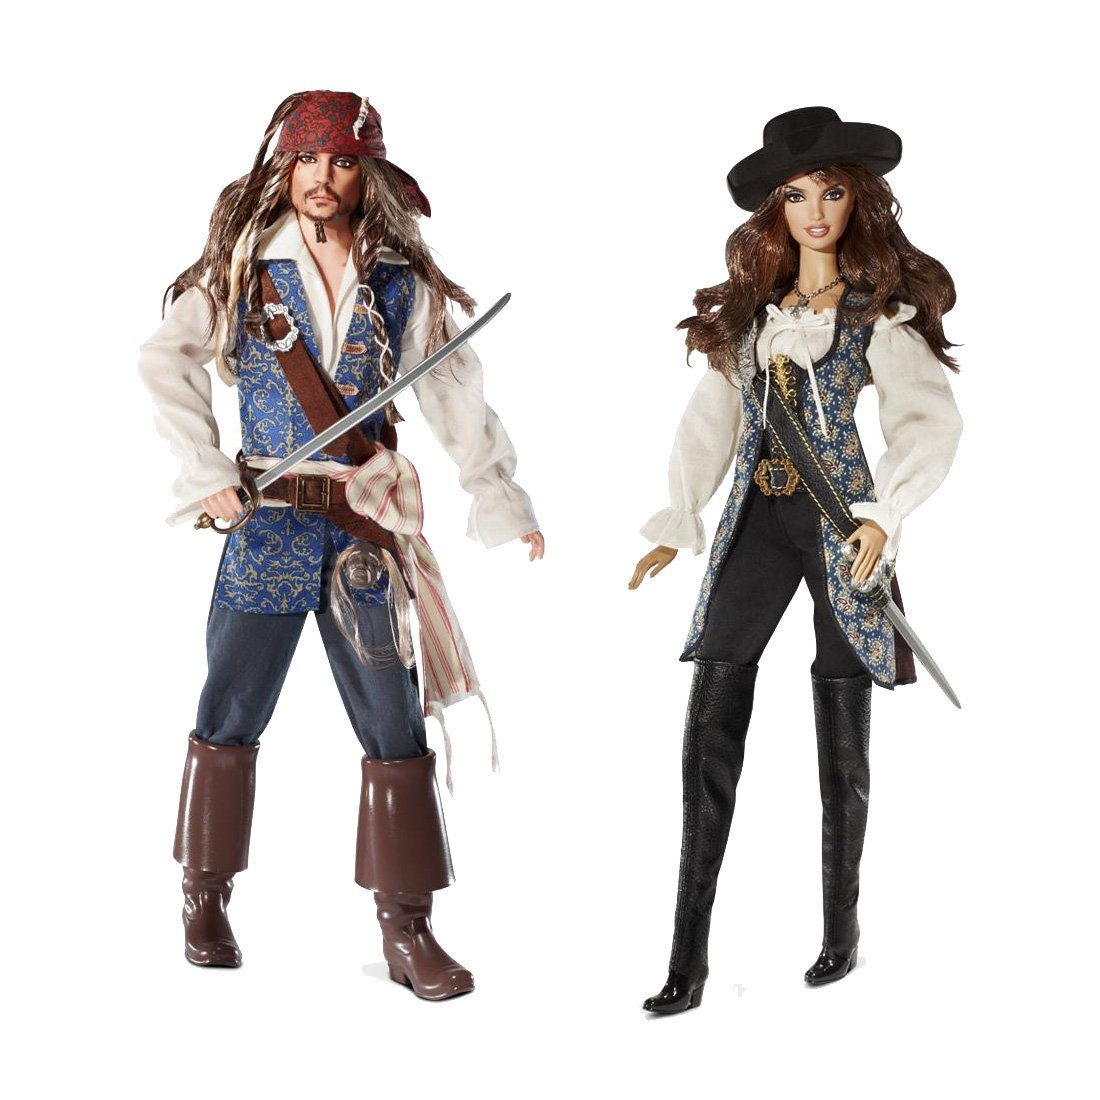 http://2.bp.blogspot.com/-mEZbCpRQnqY/T4vQfl032FI/AAAAAAAAM5g/uF4j0XhFCpc/s1600/Pirates+of+The+Caribbean+Captain+Jack+Sparrow+and+Angelica+Dolls.jpg